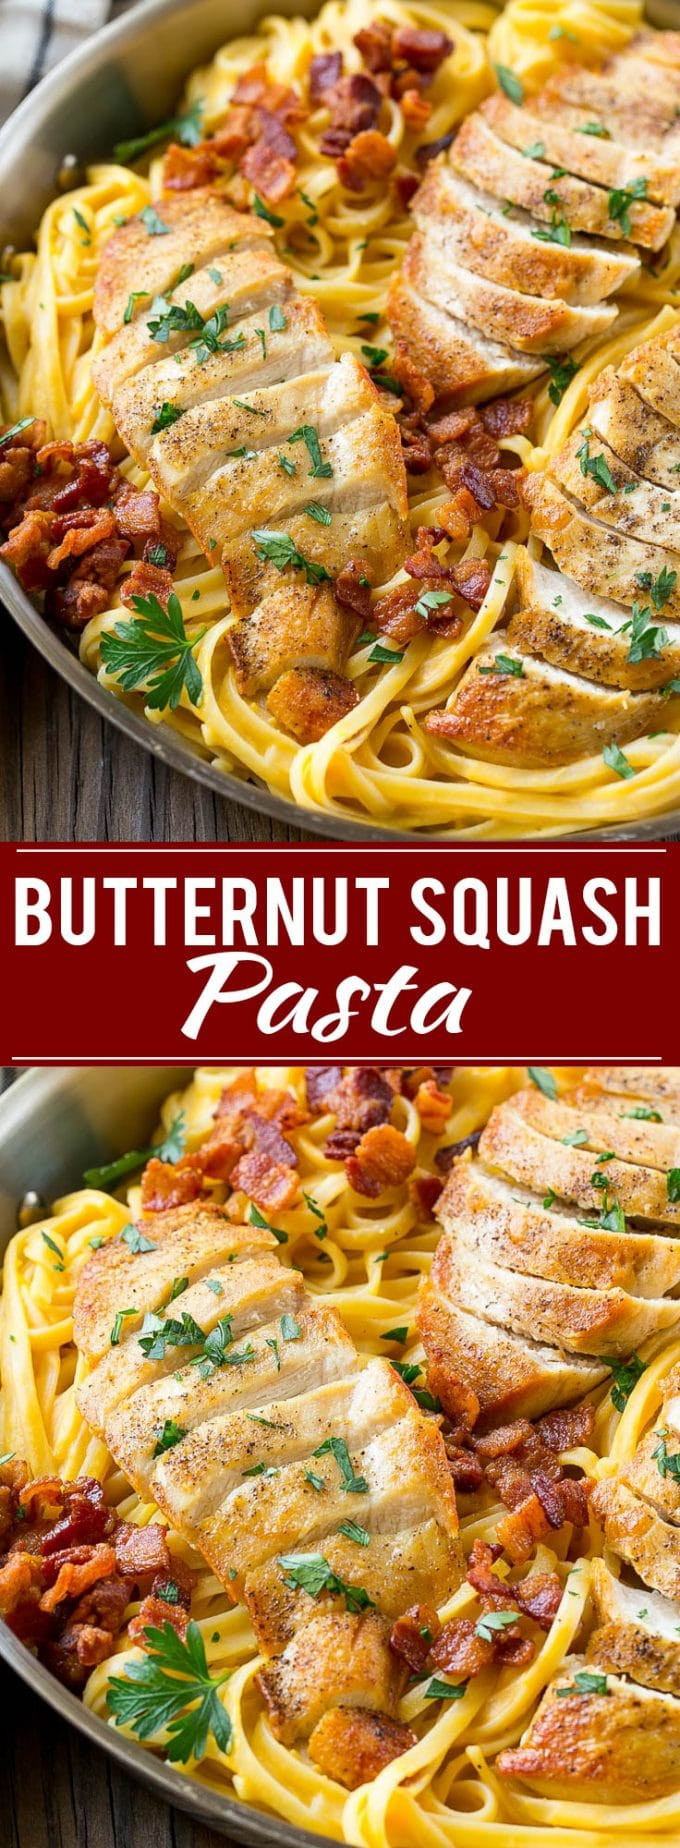 Butternut Squash Dinner Recipes  Butternut Squash Pasta with Chicken Dinner at the Zoo